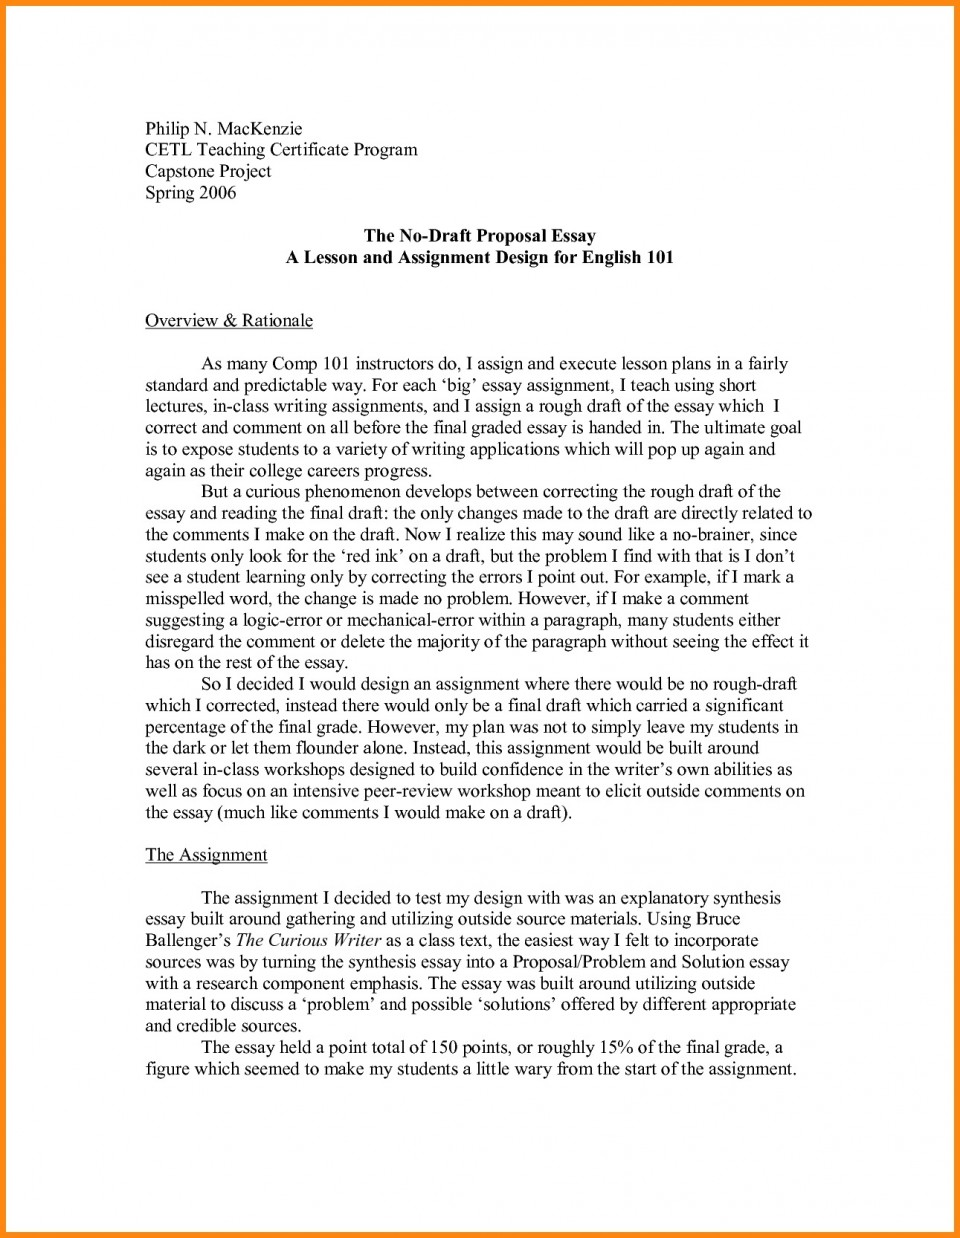 019 Research Paper Papers Topics For Finance Topic Proposal Example Essay At Phenomenal High School Students In Management 960